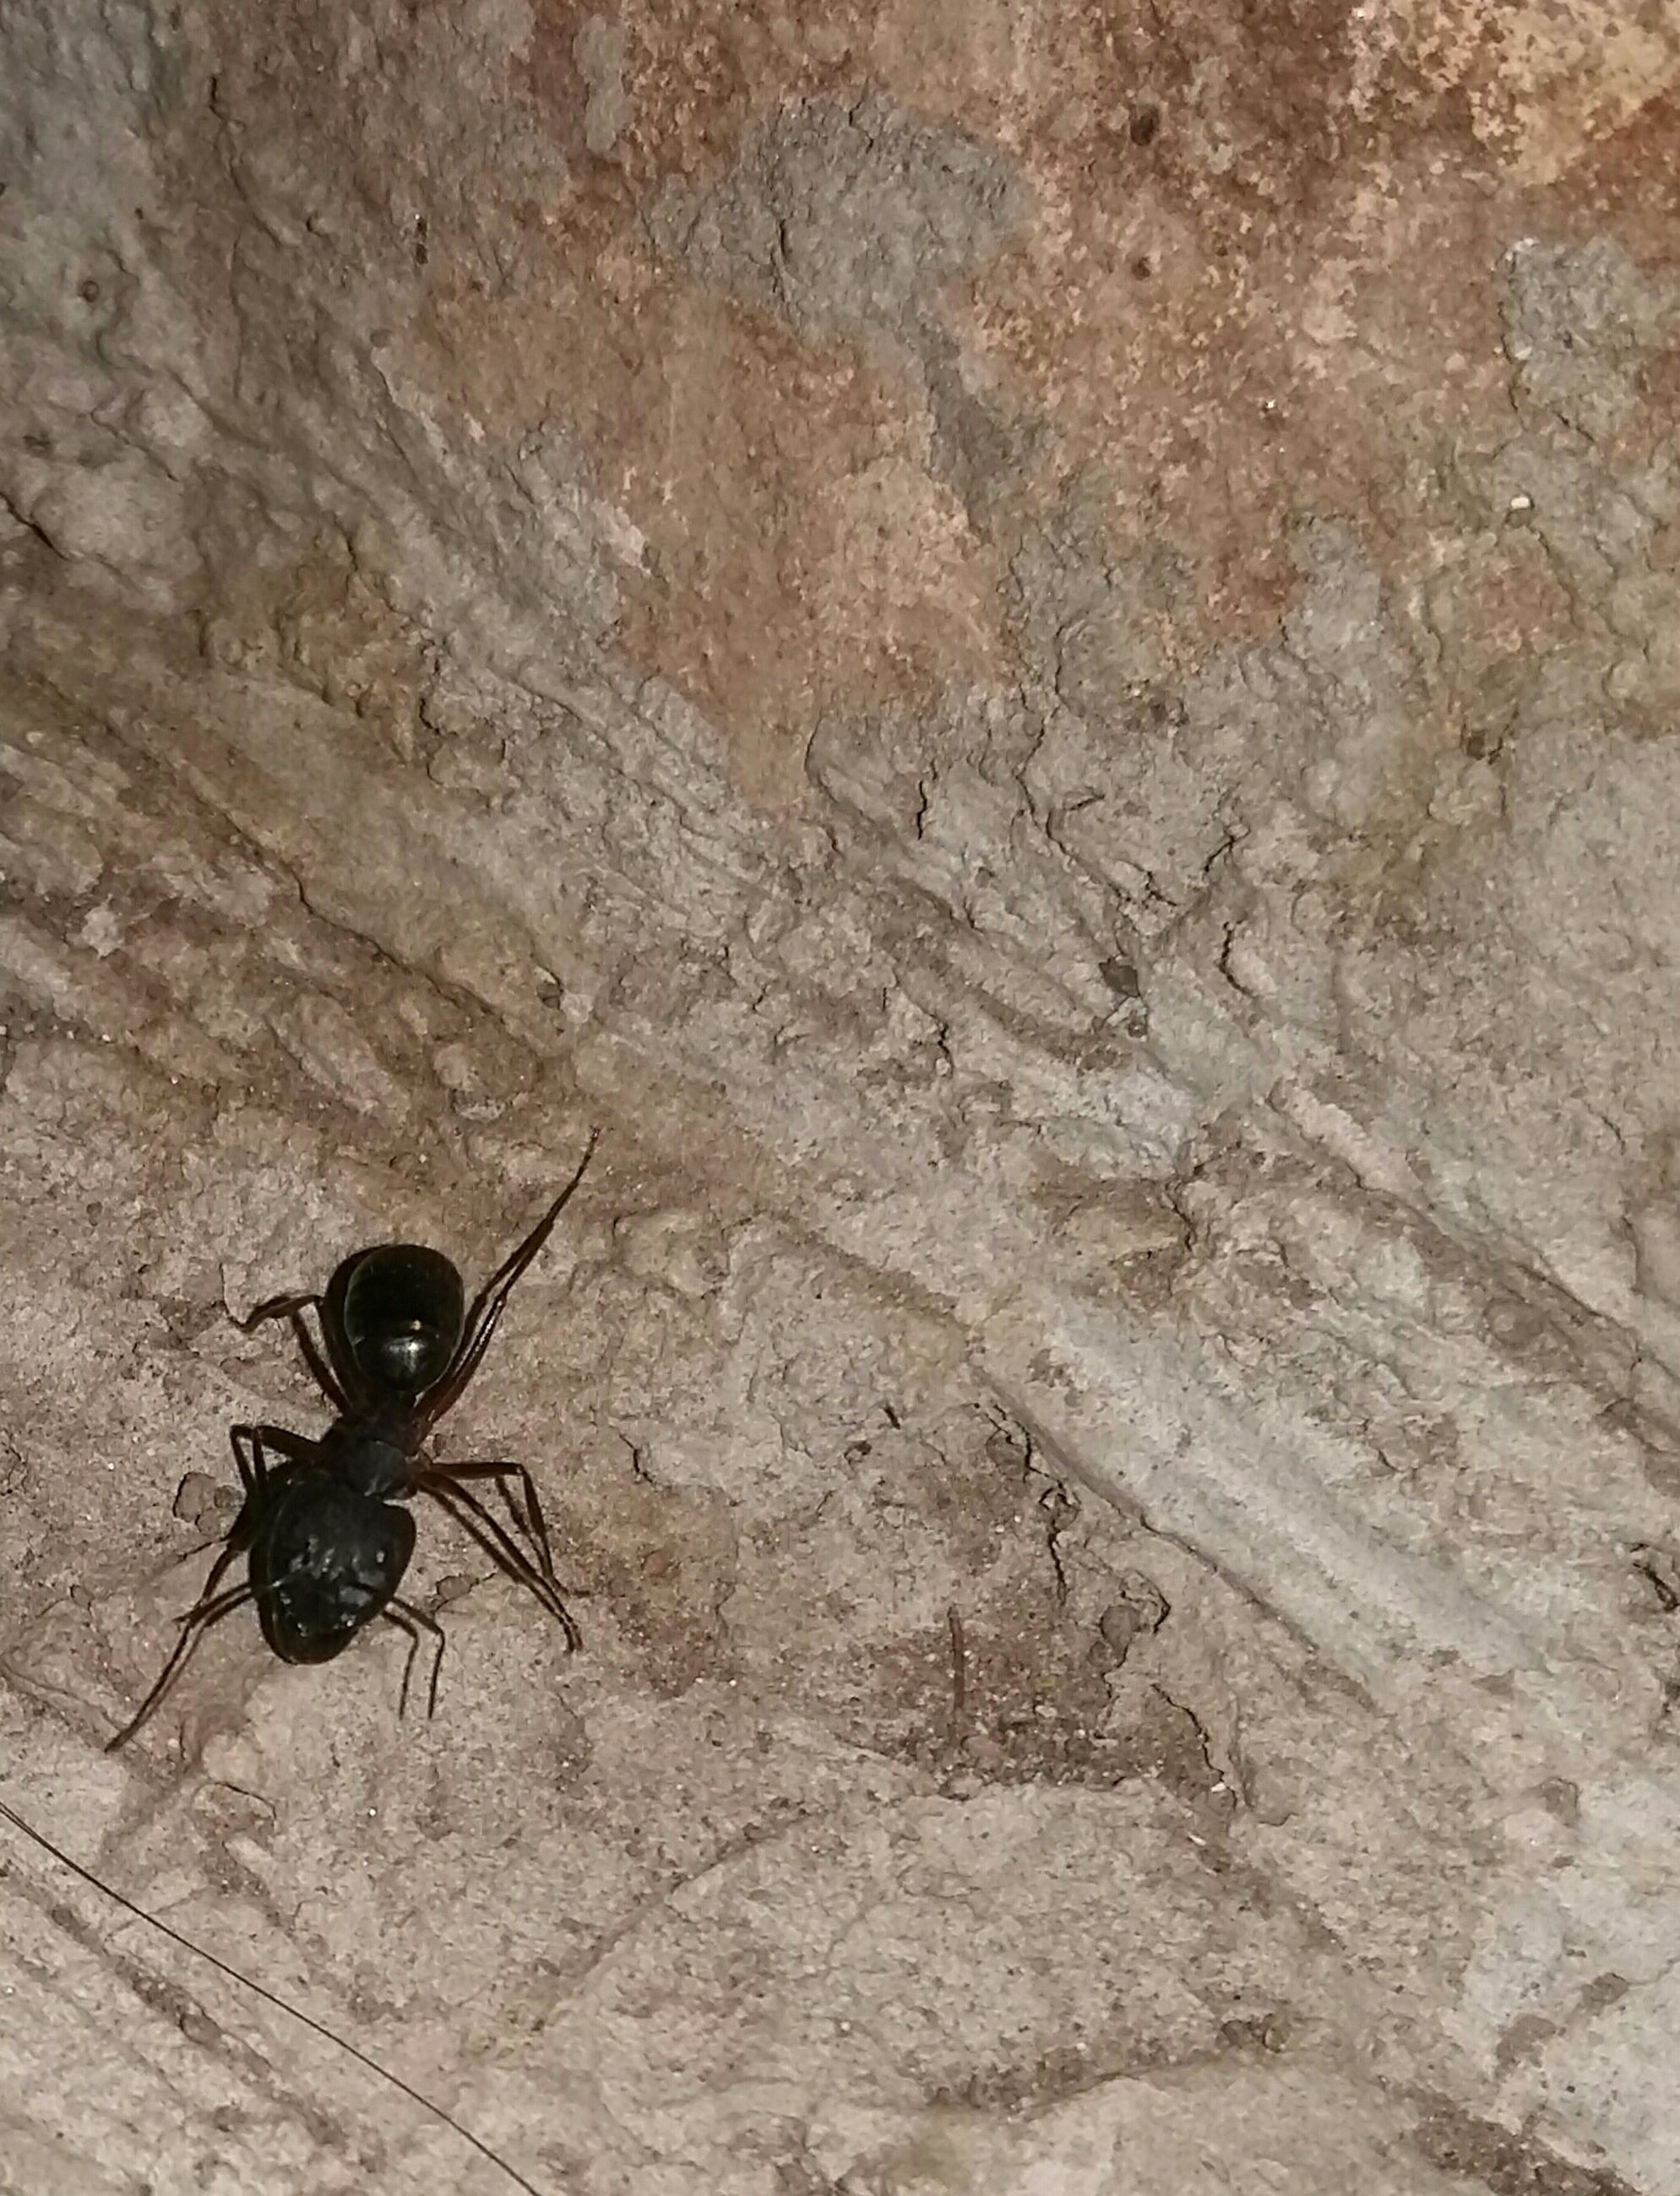 insect, animal themes, animals in the wild, one animal, wildlife, close-up, full length, high angle view, spider, outdoors, day, nature, zoology, textured, two animals, black color, no people, wall - building feature, focus on foreground, ant